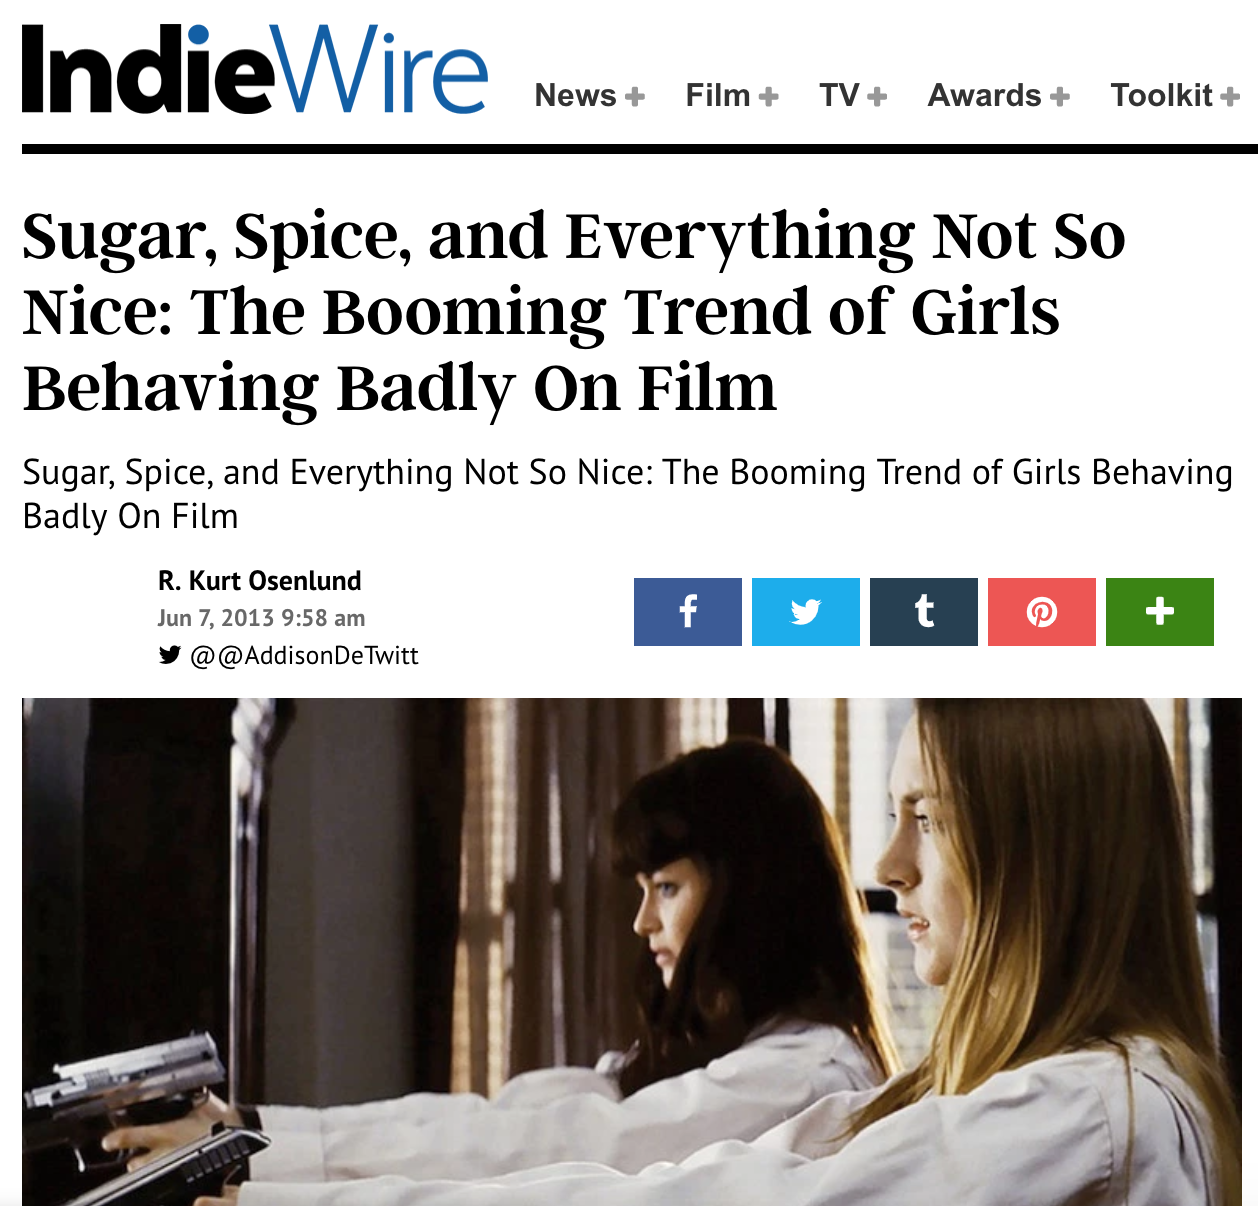 INDIEWIRE  FEATURE, GIRLS ON FILM: FEMINISM OR FETISHISM? (JUNE 2013)   Boldly empowered young women on screen saw a spike when I wrote this reported cultural piece. But who was benefitting from the trend?